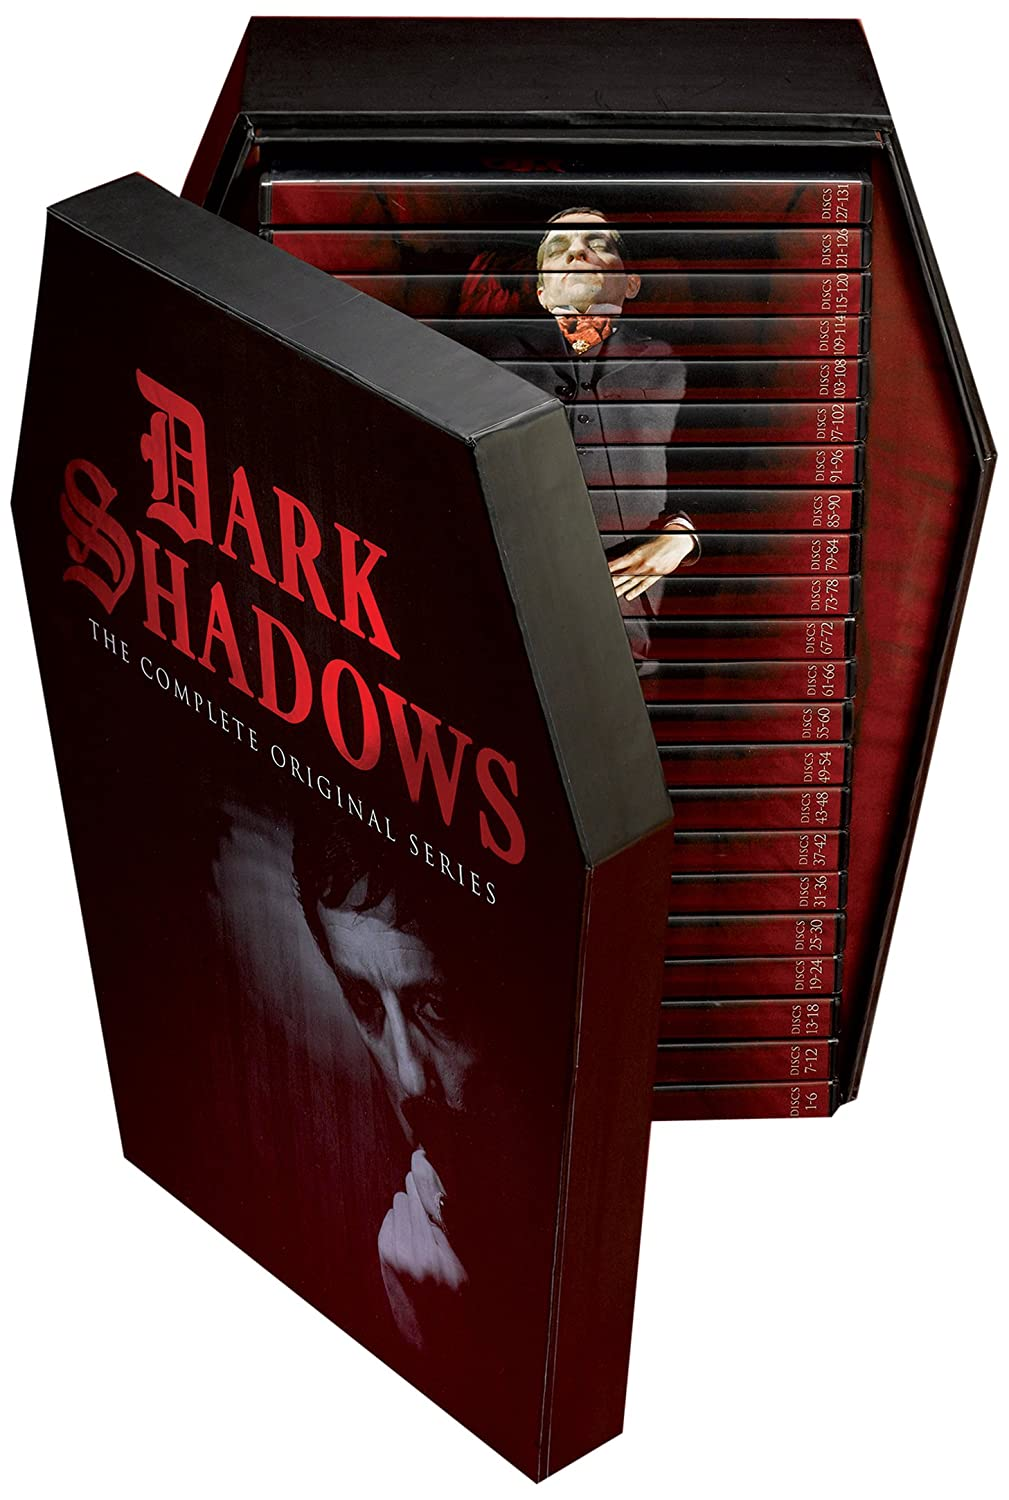 Dark Shadows: The Complete Original Series (Deluxe Edition) $269.99